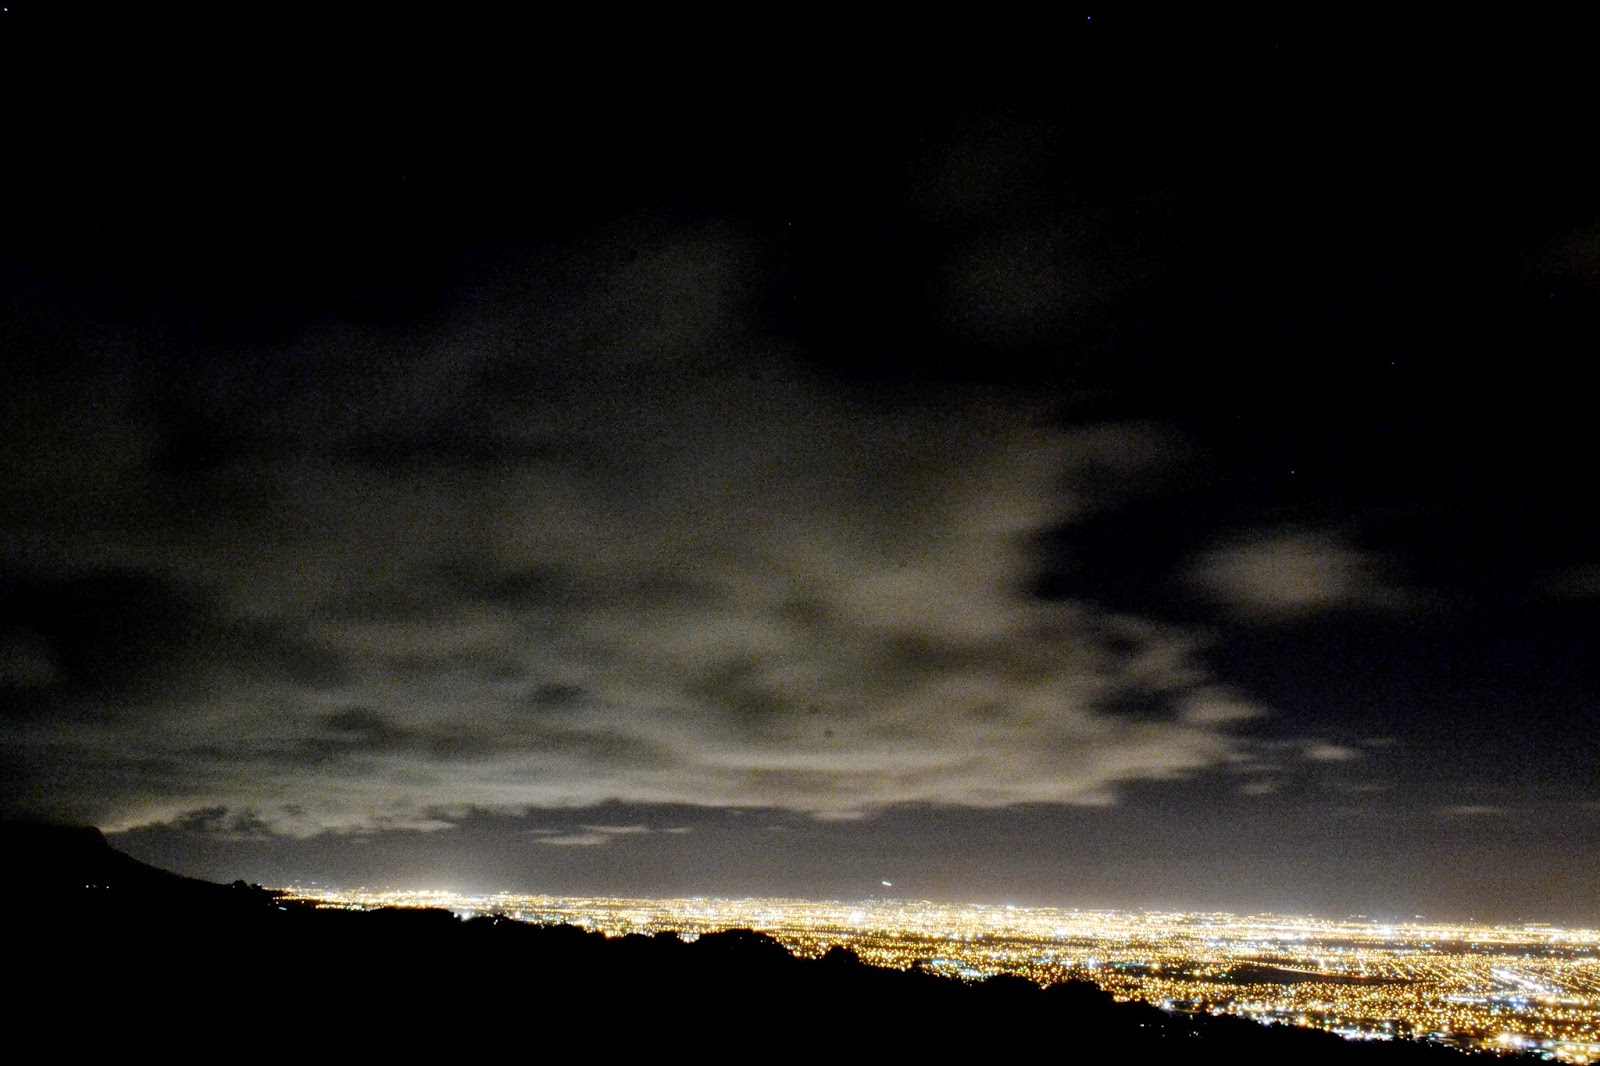 View from Ou Kaapse Weg at night